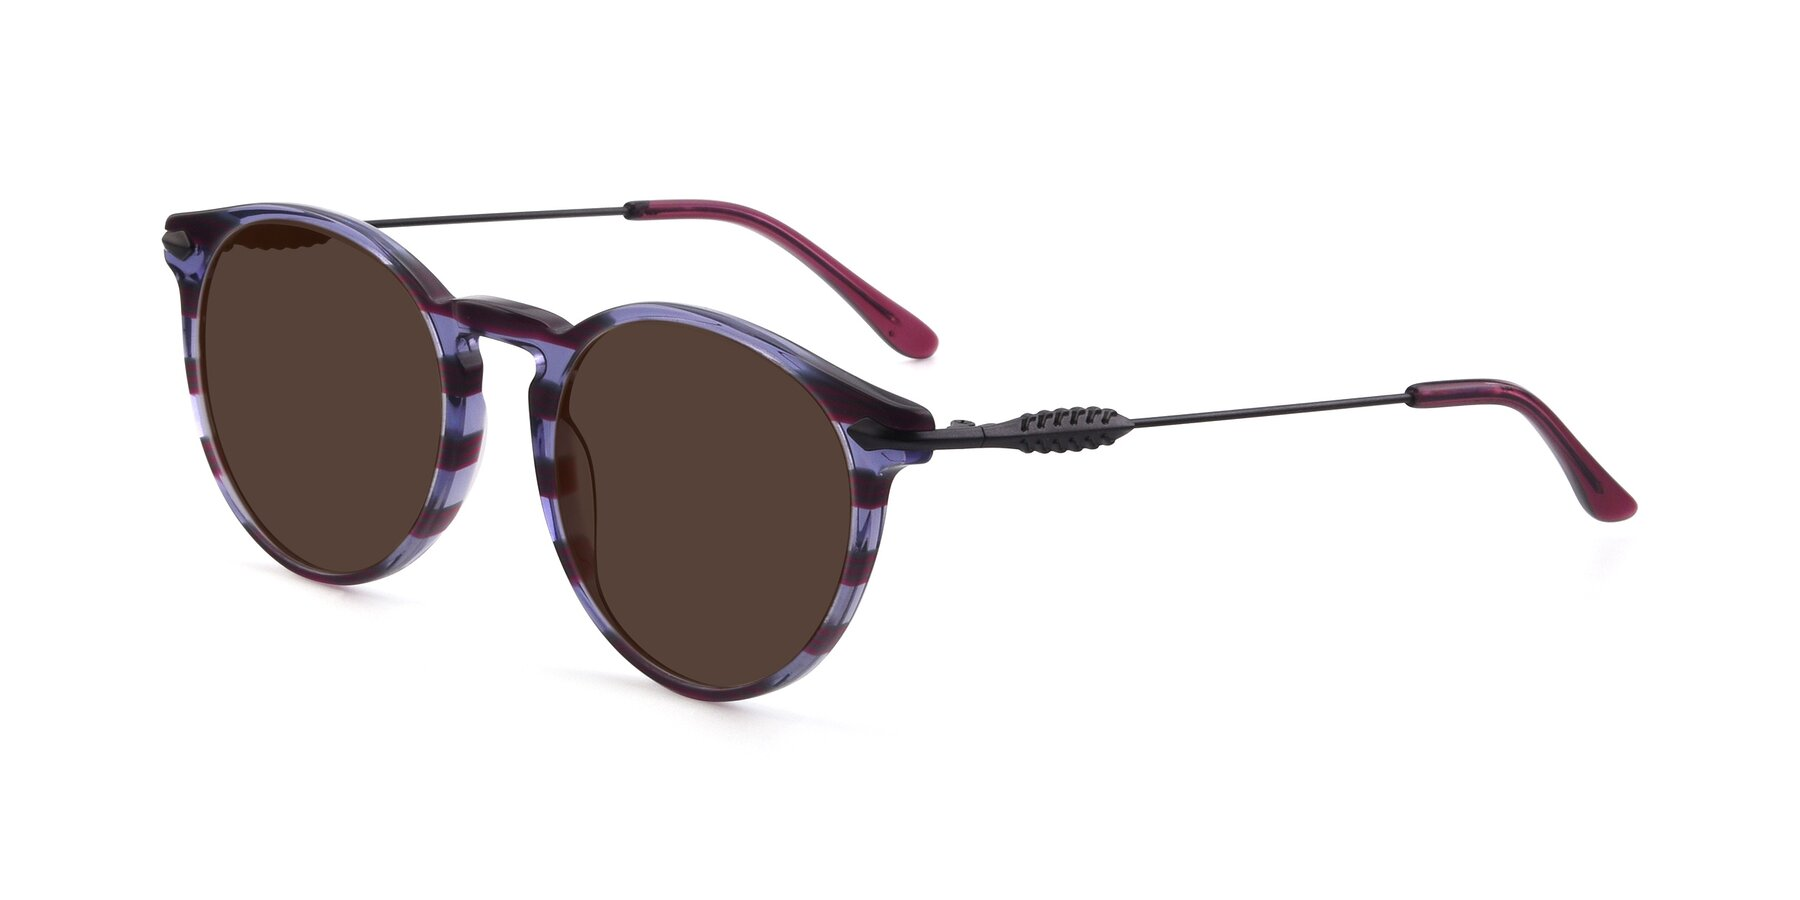 Angle of 17660 in Stripe Purple with Brown Tinted Lenses